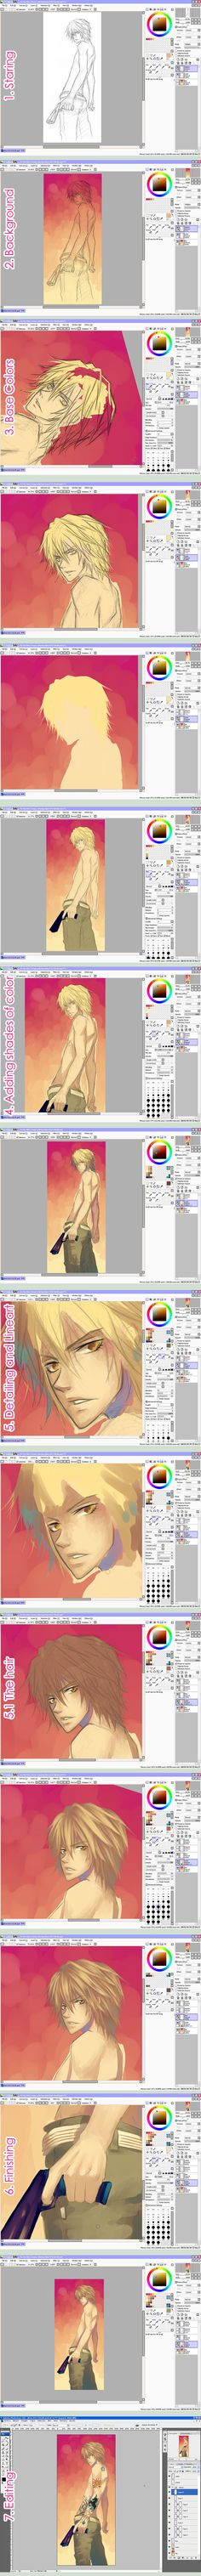 Tutorial: Painting by *Celsa  I need to learn how to use these programs